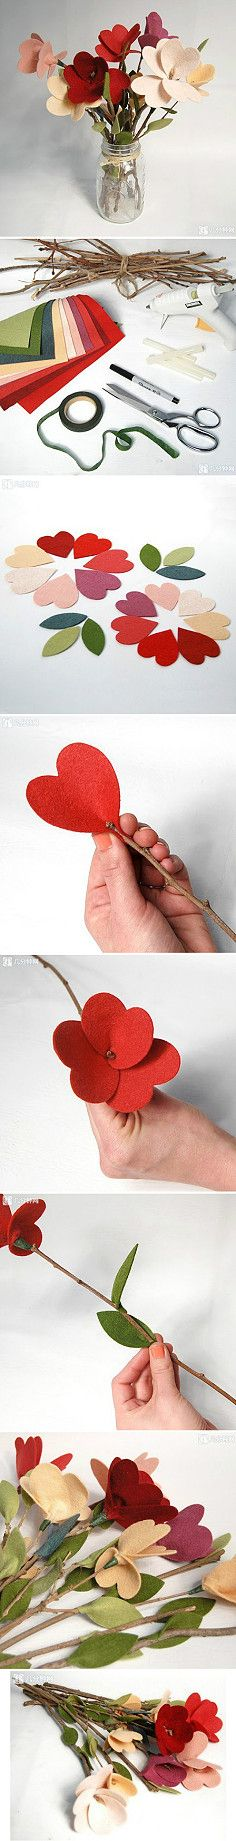 Cute felt flowers! Step-by-step pictures.